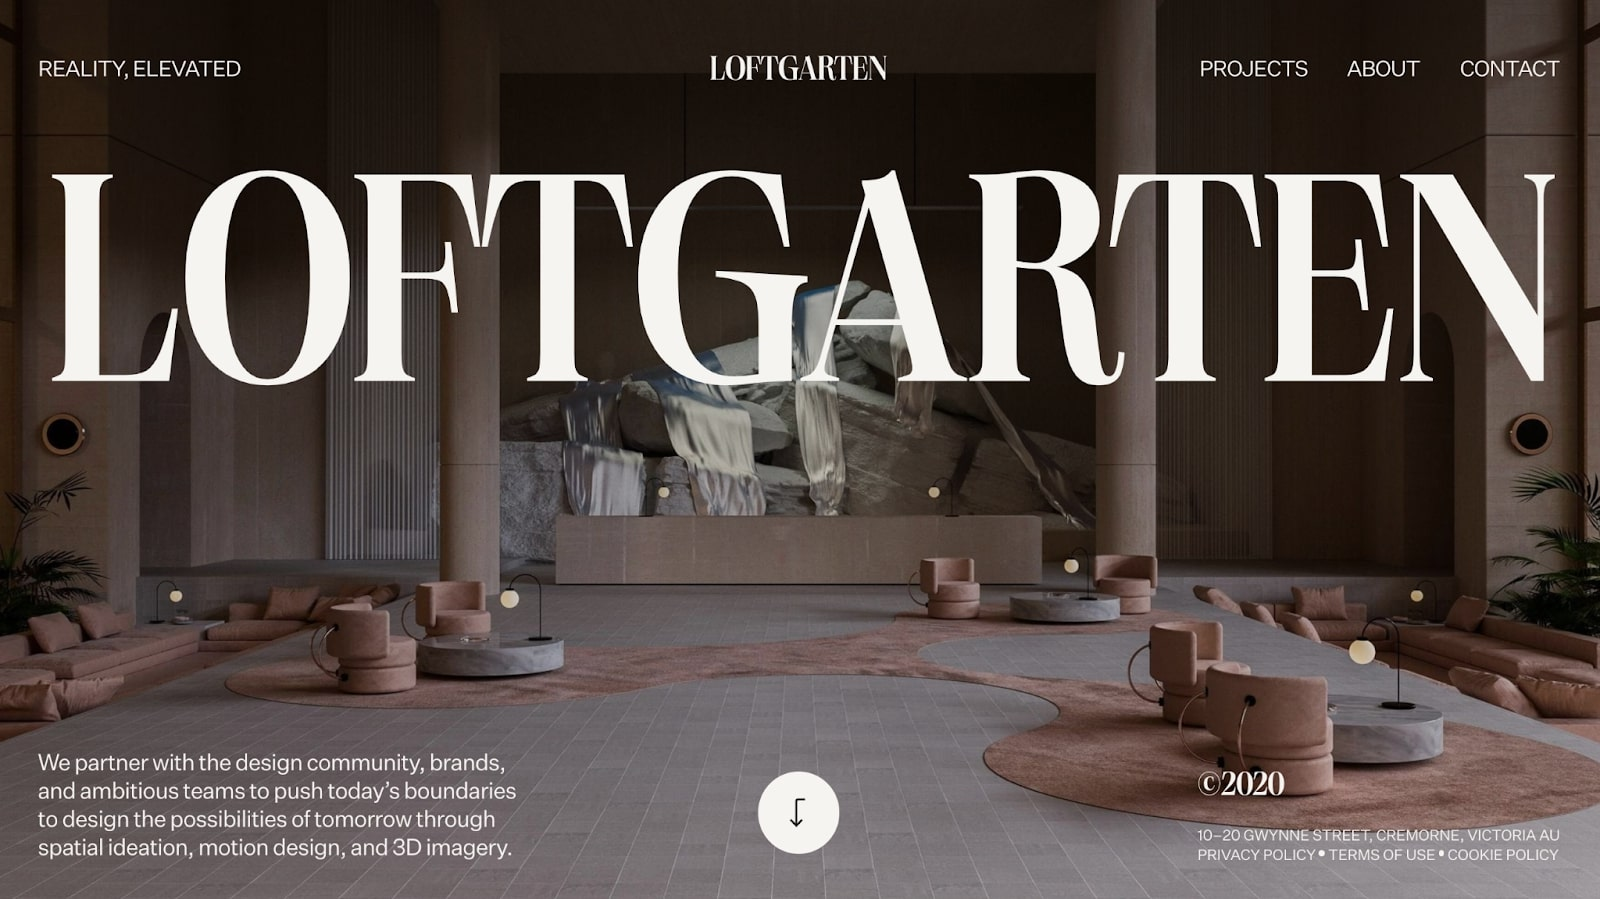 An image of Loftgarten's home page.